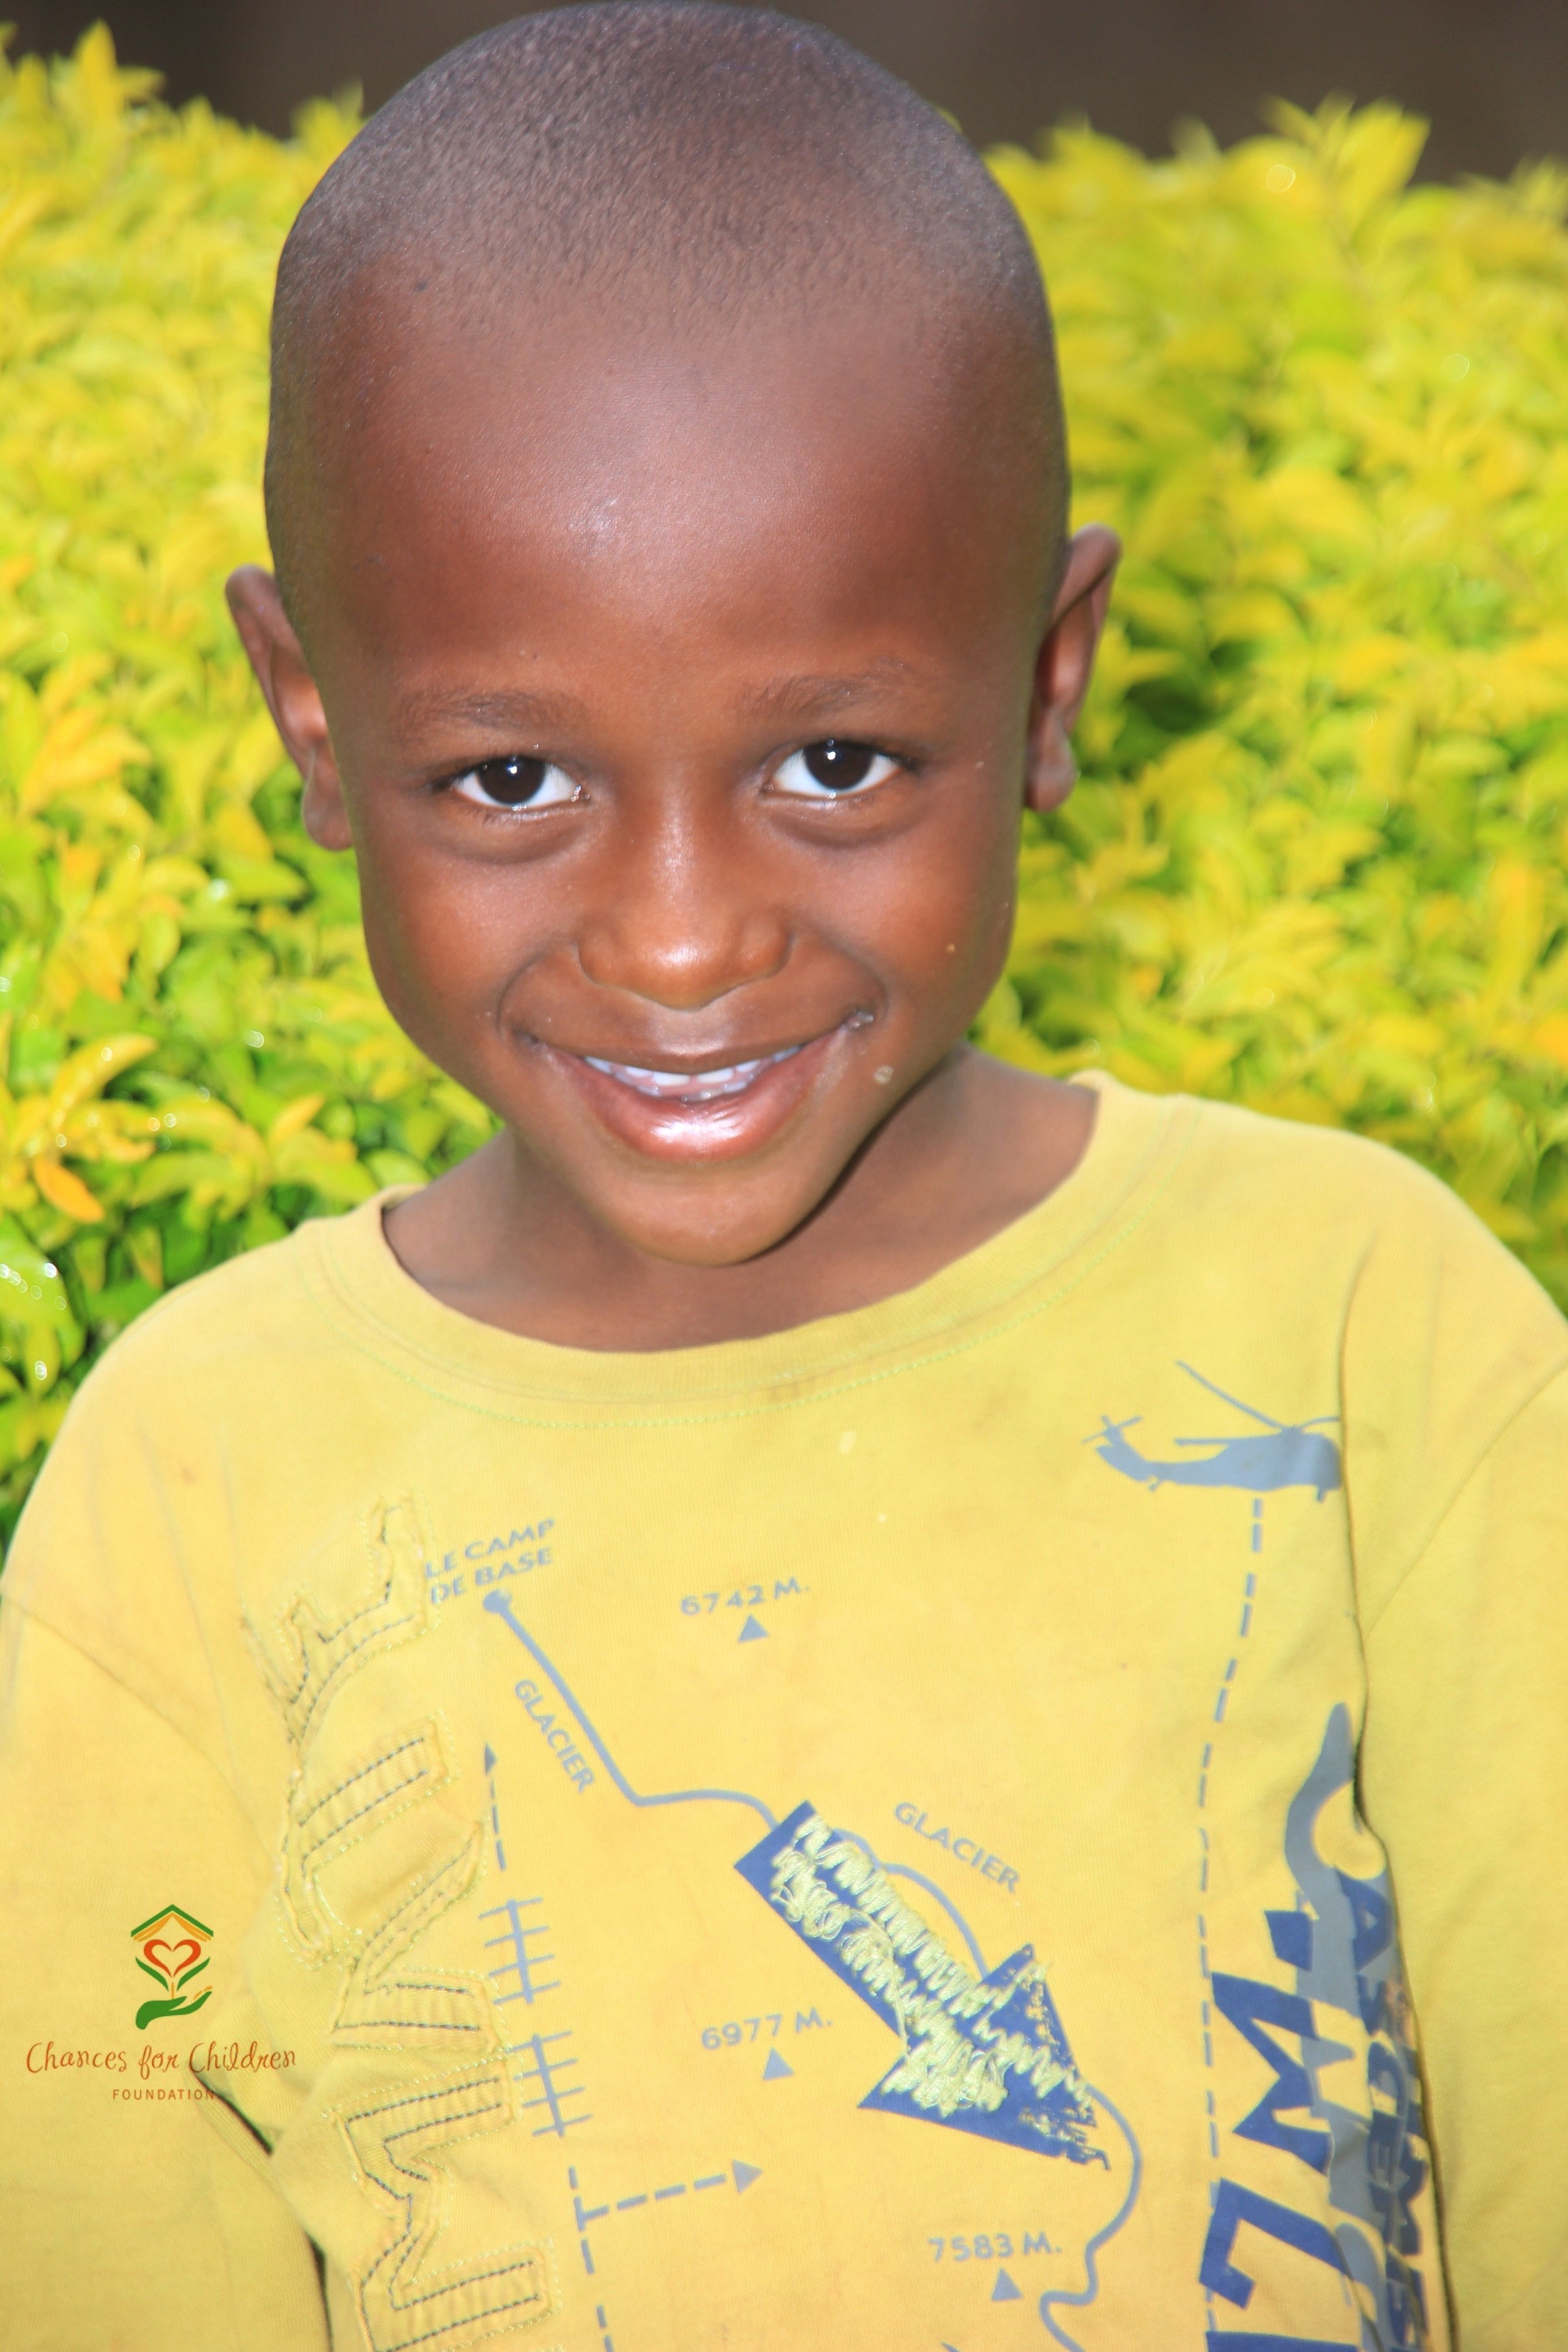 c4c-charity-uganda-children-portraits-20